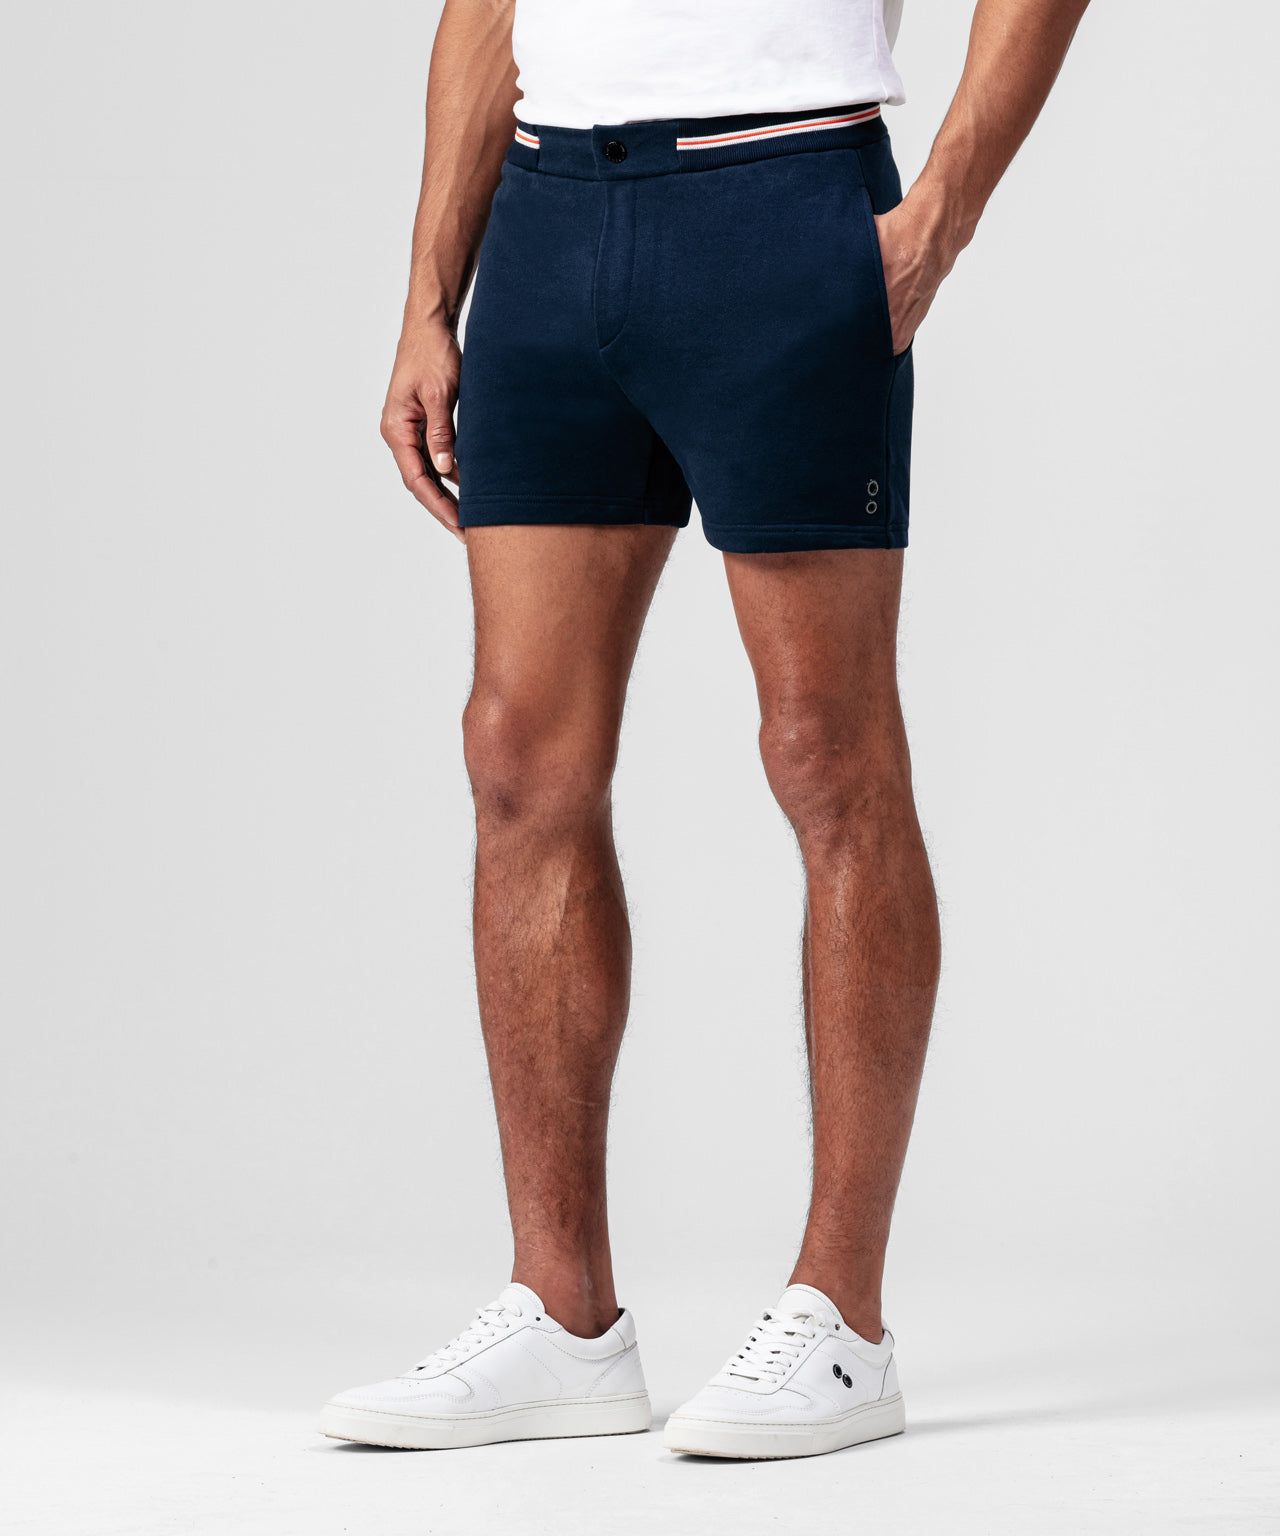 Urban Shorts - navy